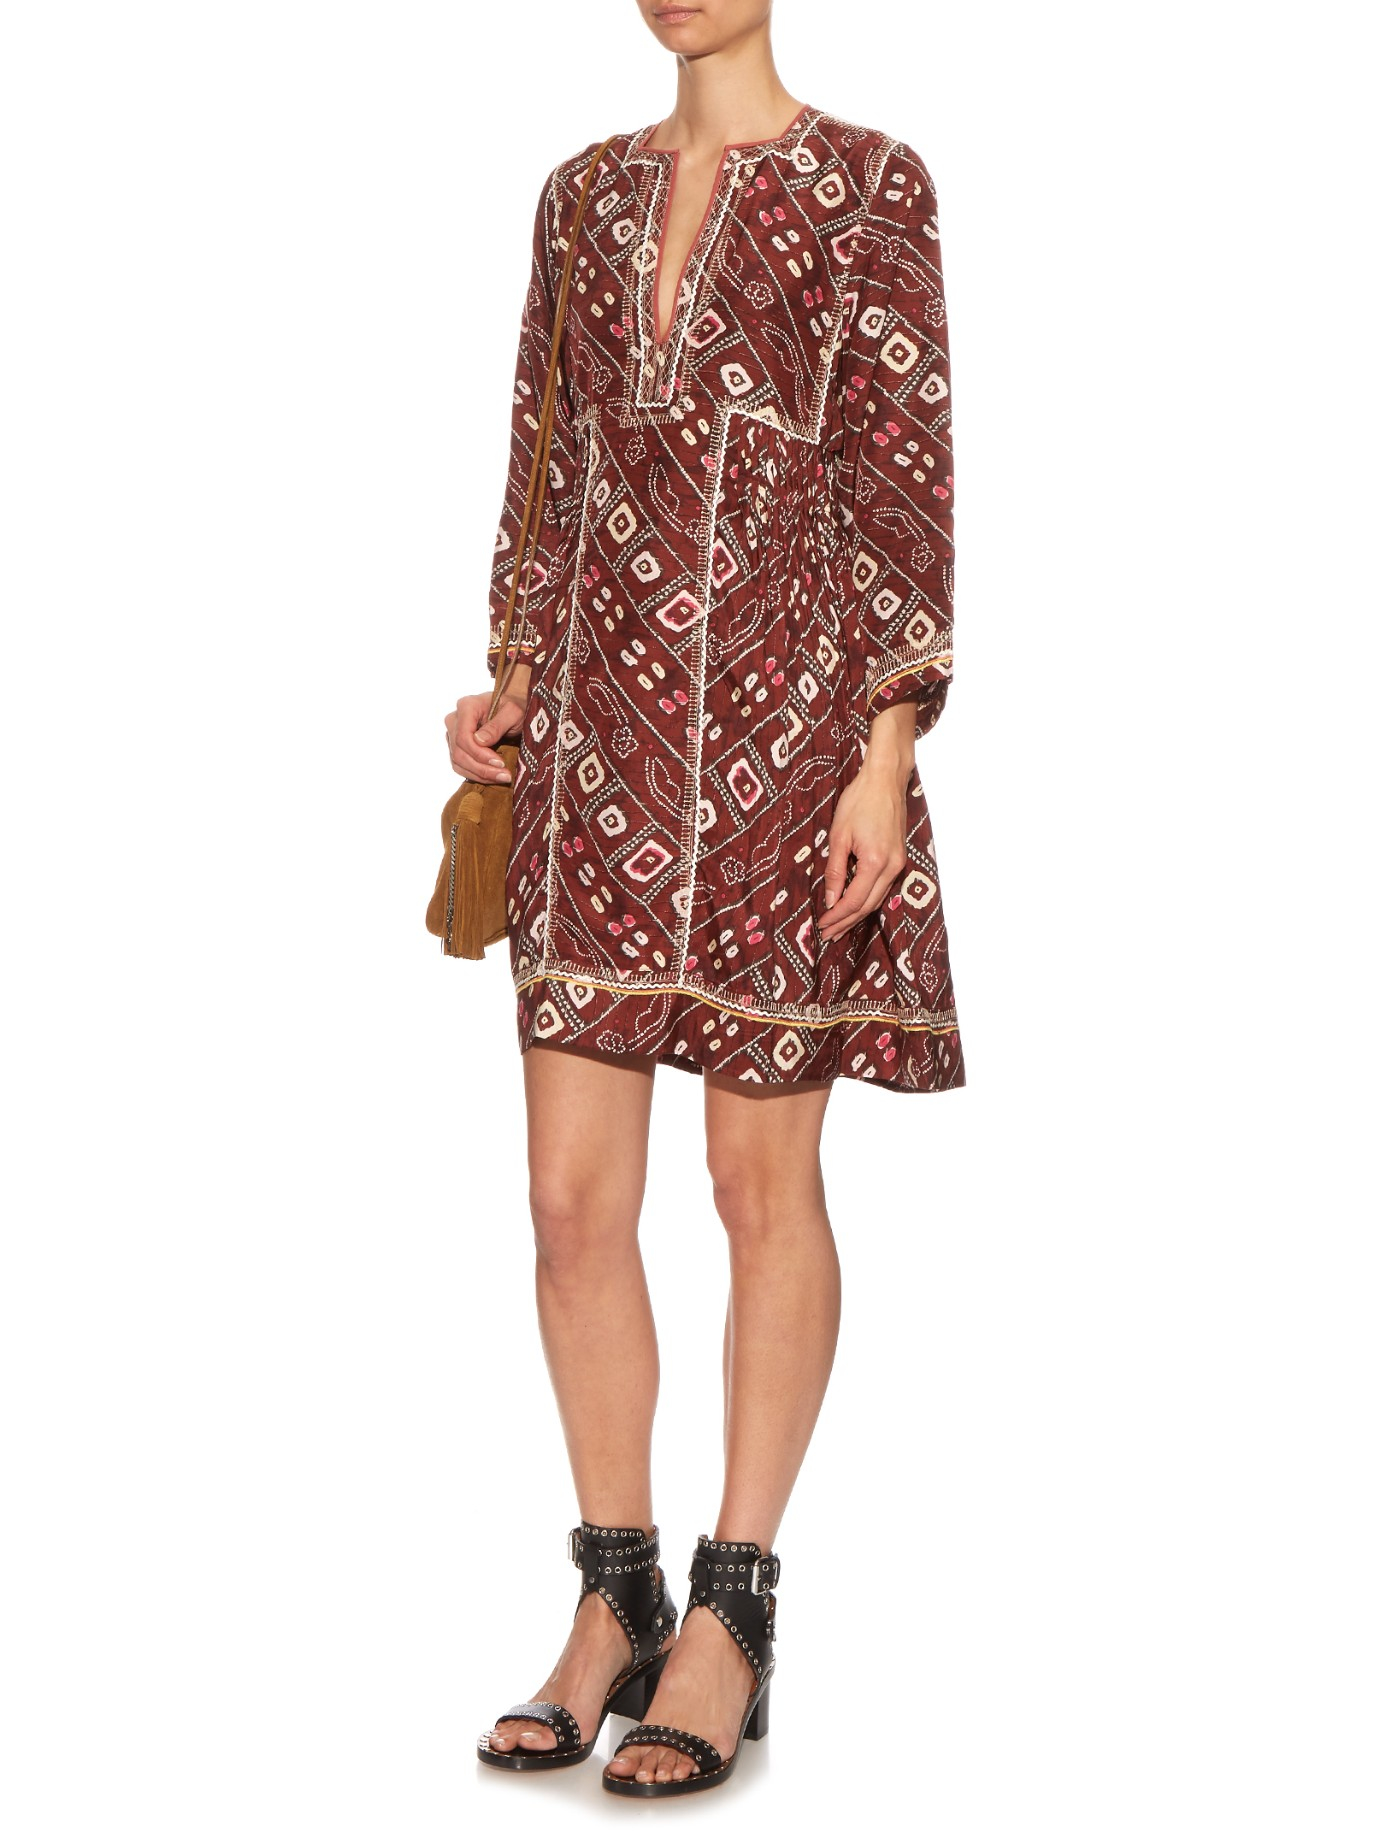 Lyst isabel marant 39 thurman 39 dress in red for Isabel marant shirt dress